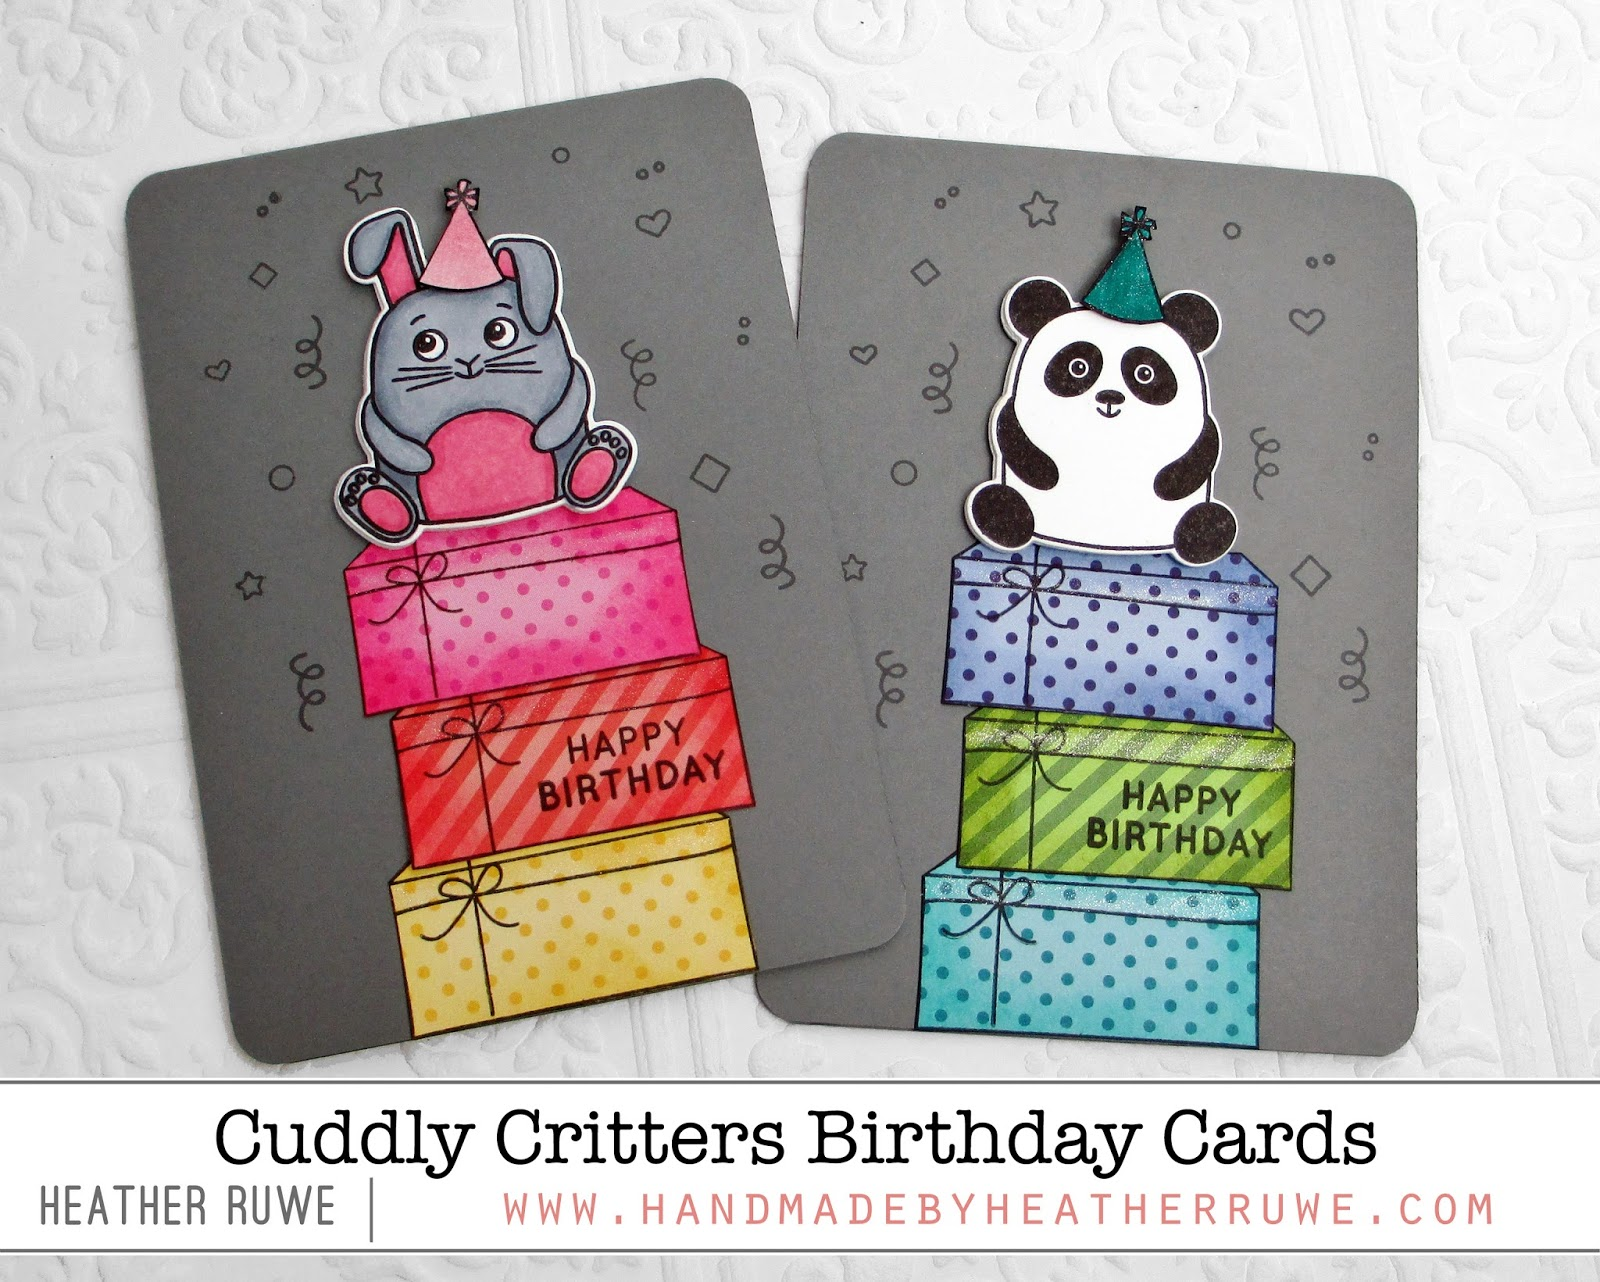 Handmade by Heather Ruwe Cuddly Critters Birthday Cards – I Want to Make a Birthday Card